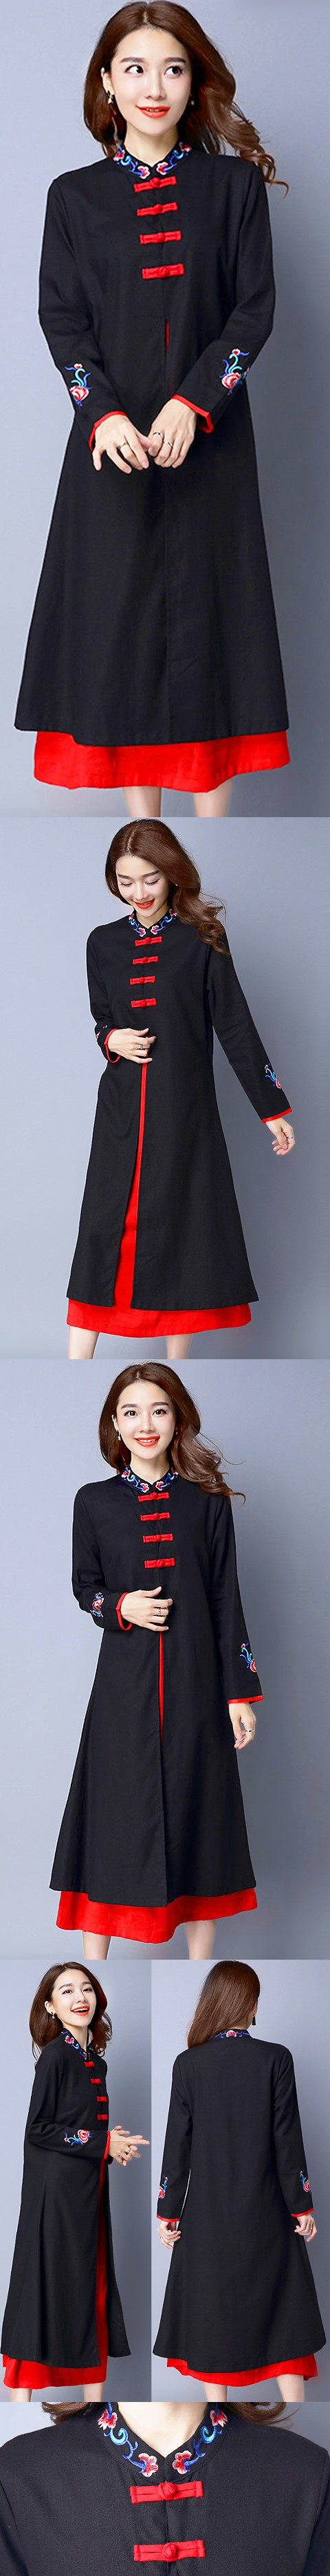 Ethnic Long-length Dual-layer Dress - Black (RM)